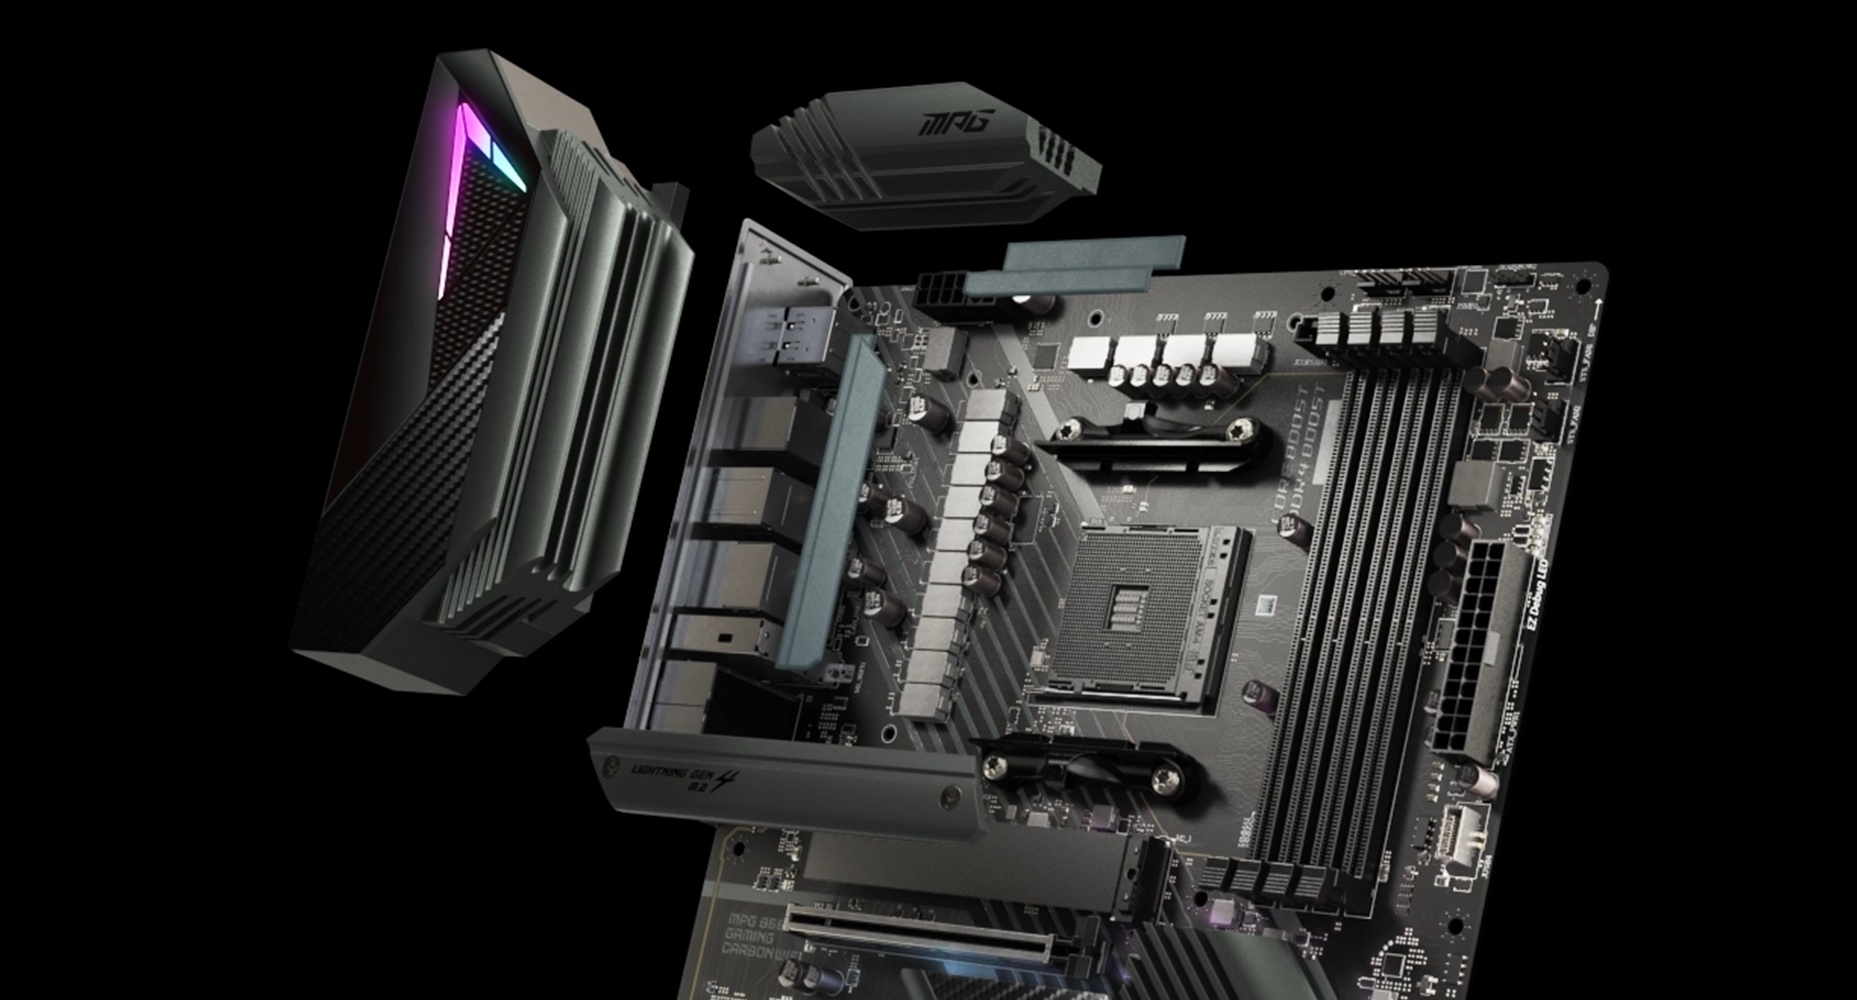 MSI MPG B550 GAMING CARBON WIFI THERMAL SOLUTION FOR MORE CORES AND HIGHER PERFORMANCE